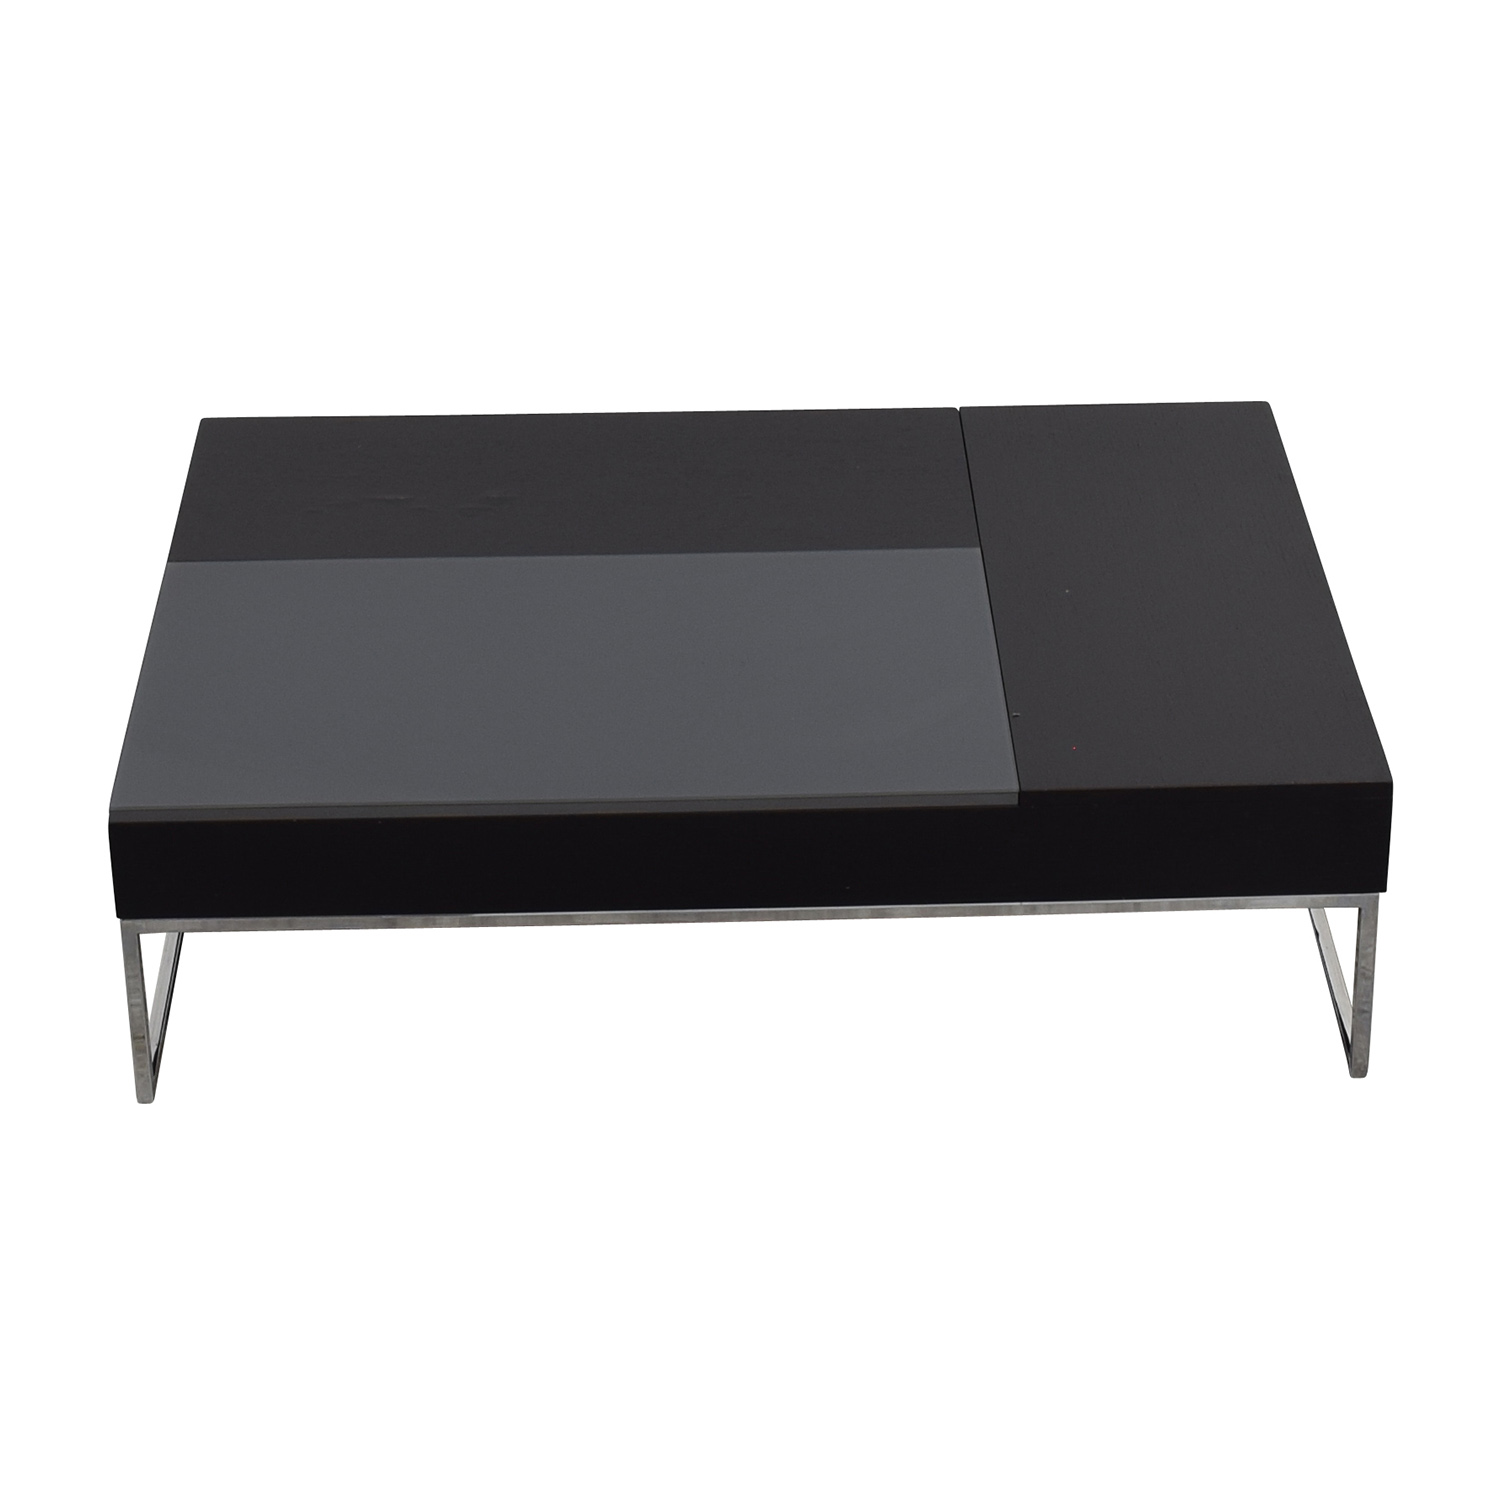 Bo Concept Coffee Table Choice Image Coffee Table Design  : boconcept chiva storage coffee table used from geotapseo.com size 1500 x 1500 jpeg 253kB